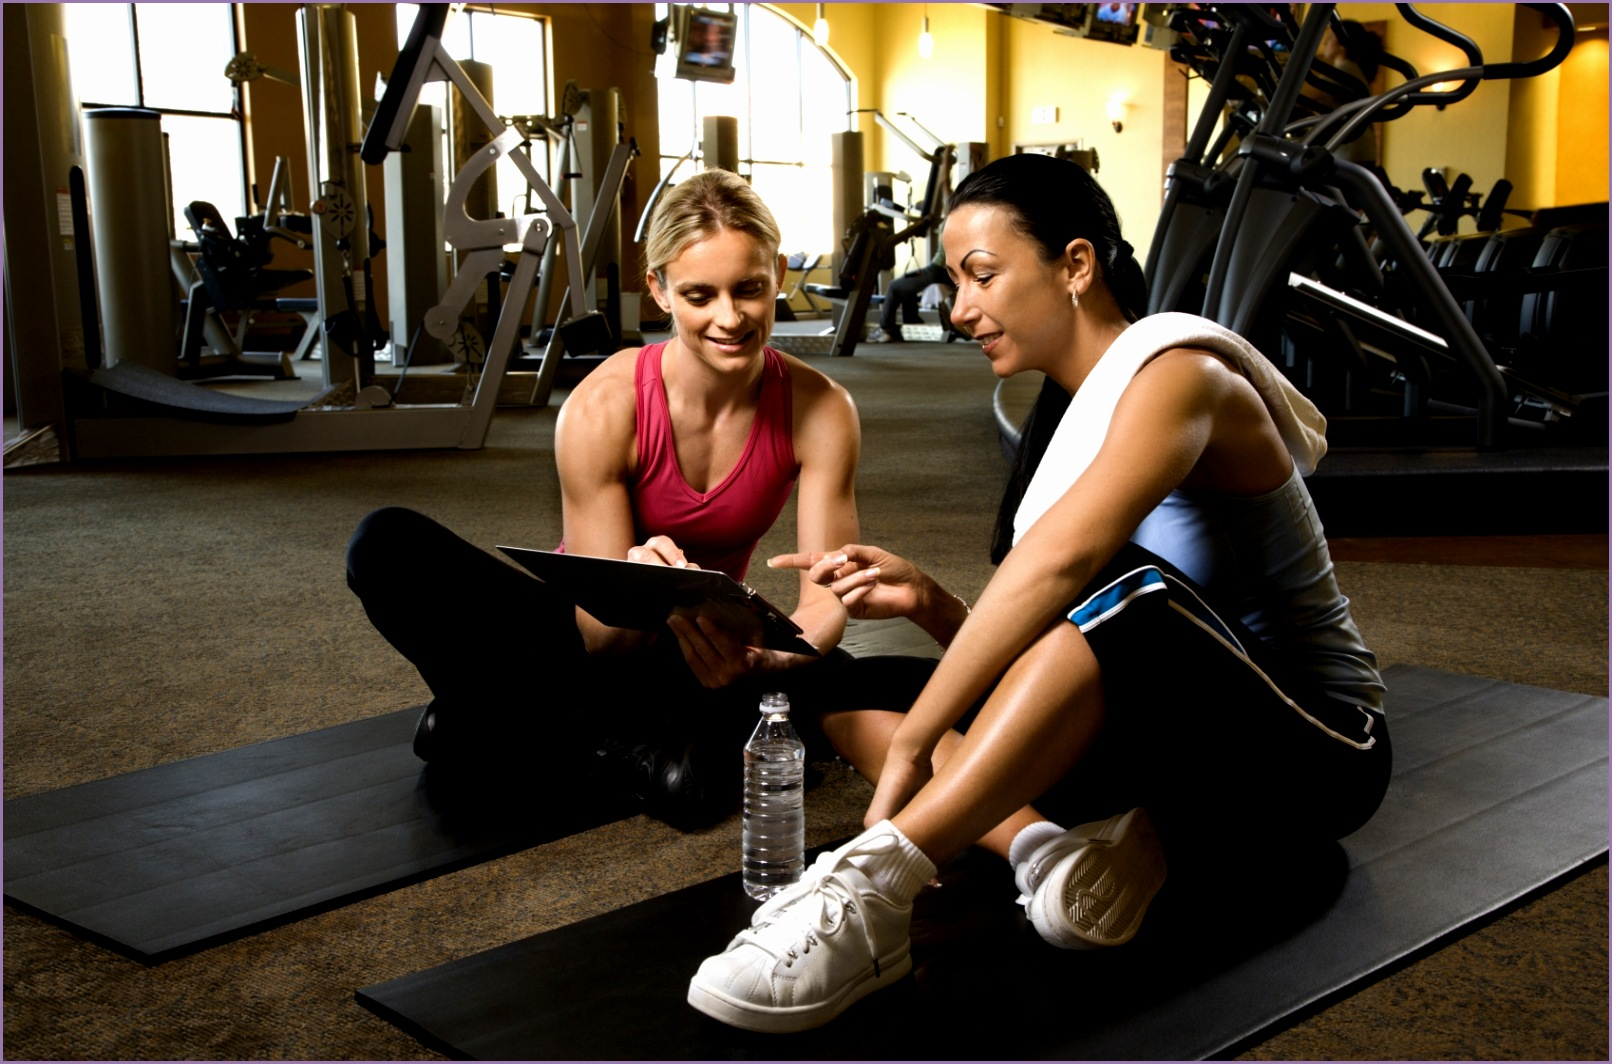 4 ways to thank your personal trainer coach